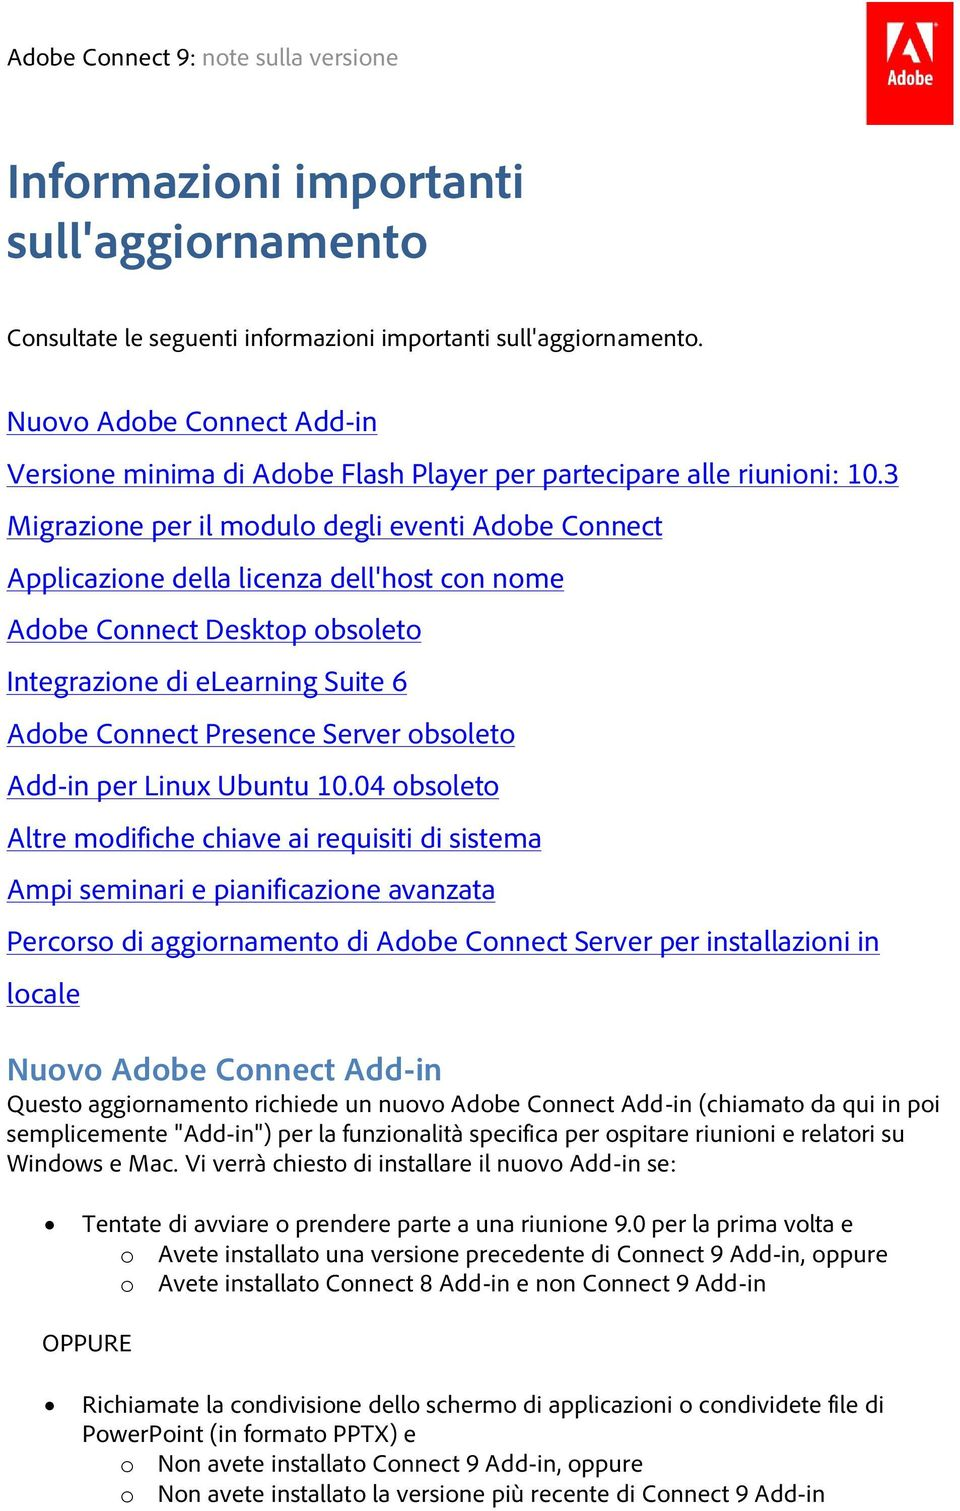 3 Migrazione per il modulo degli eventi Adobe Connect Applicazione della licenza dell'host con nome Adobe Connect Desktop obsoleto Integrazione di elearning Suite 6 Adobe Connect Presence Server